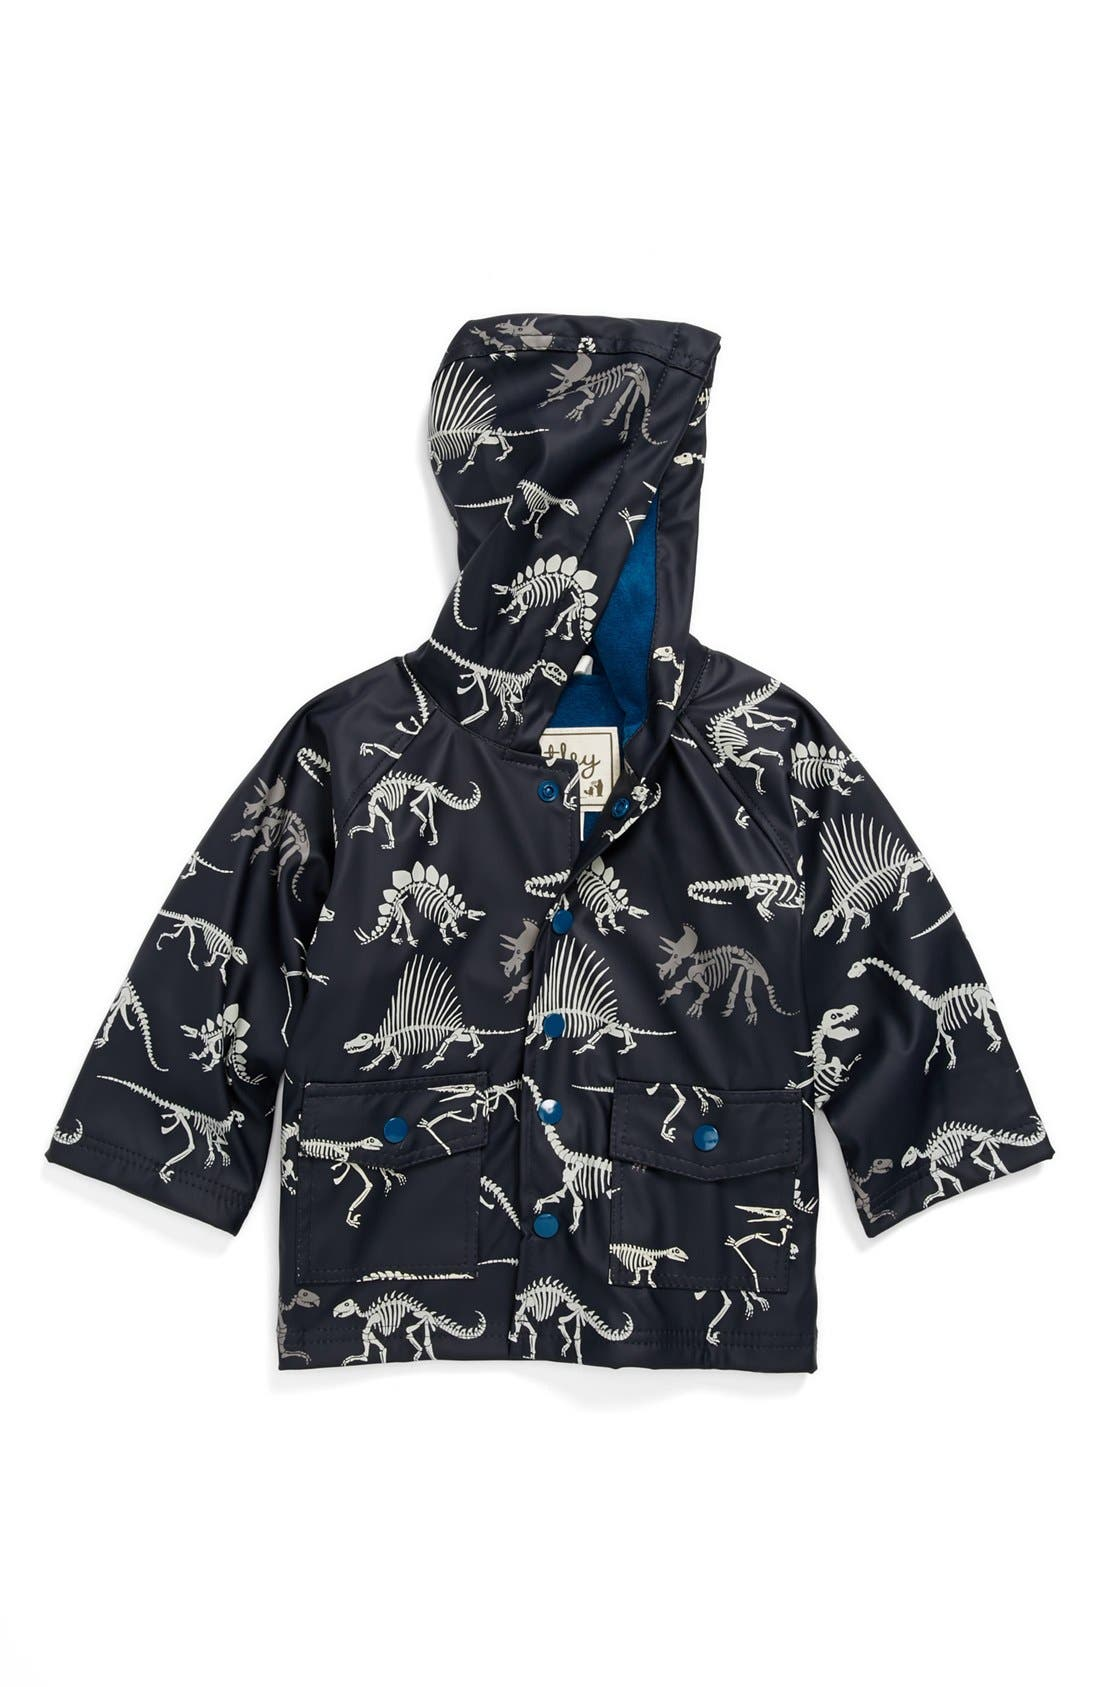 Alternate Image 1 Selected - Hatley 'Dino Bones' Rain Jacket (Baby Boys, Toddler Boys, Little Boys & Big Boys)